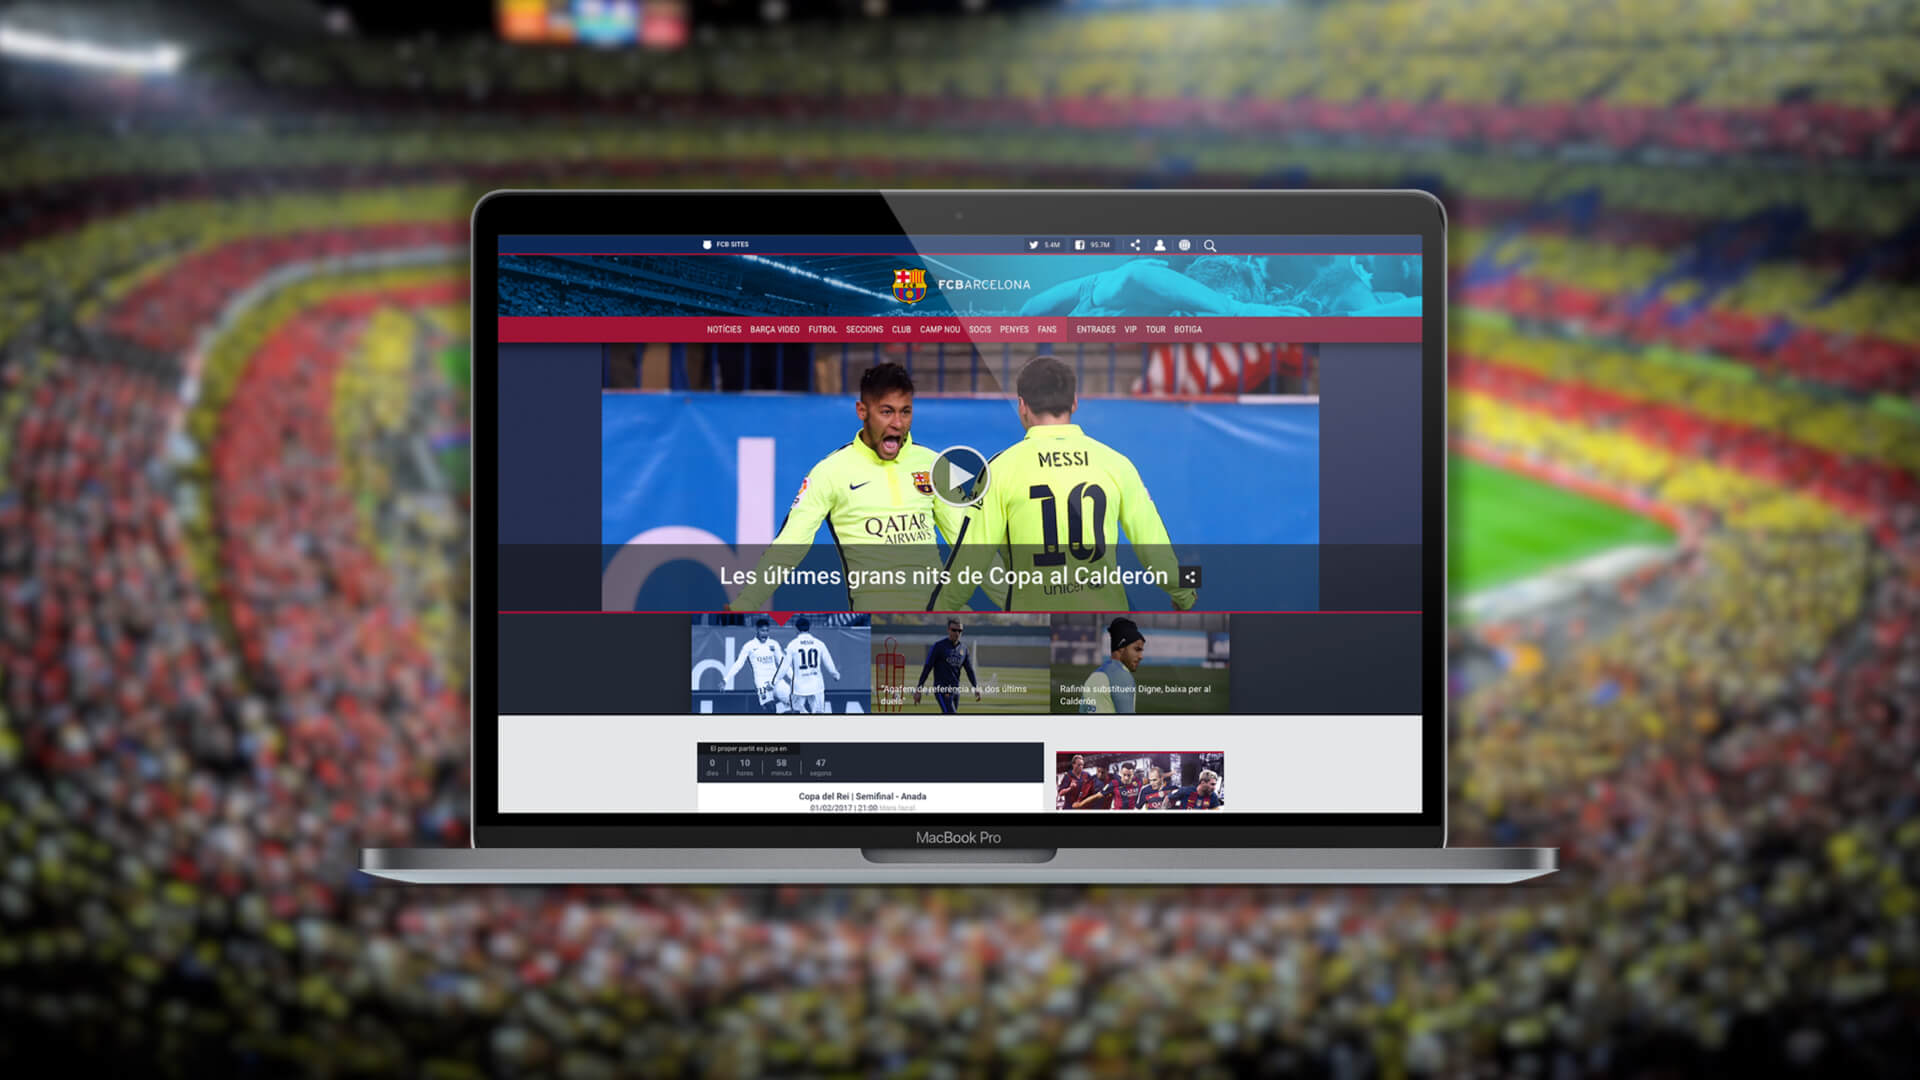 FCB web on a laptop and wallpaper with a blurry stadium image